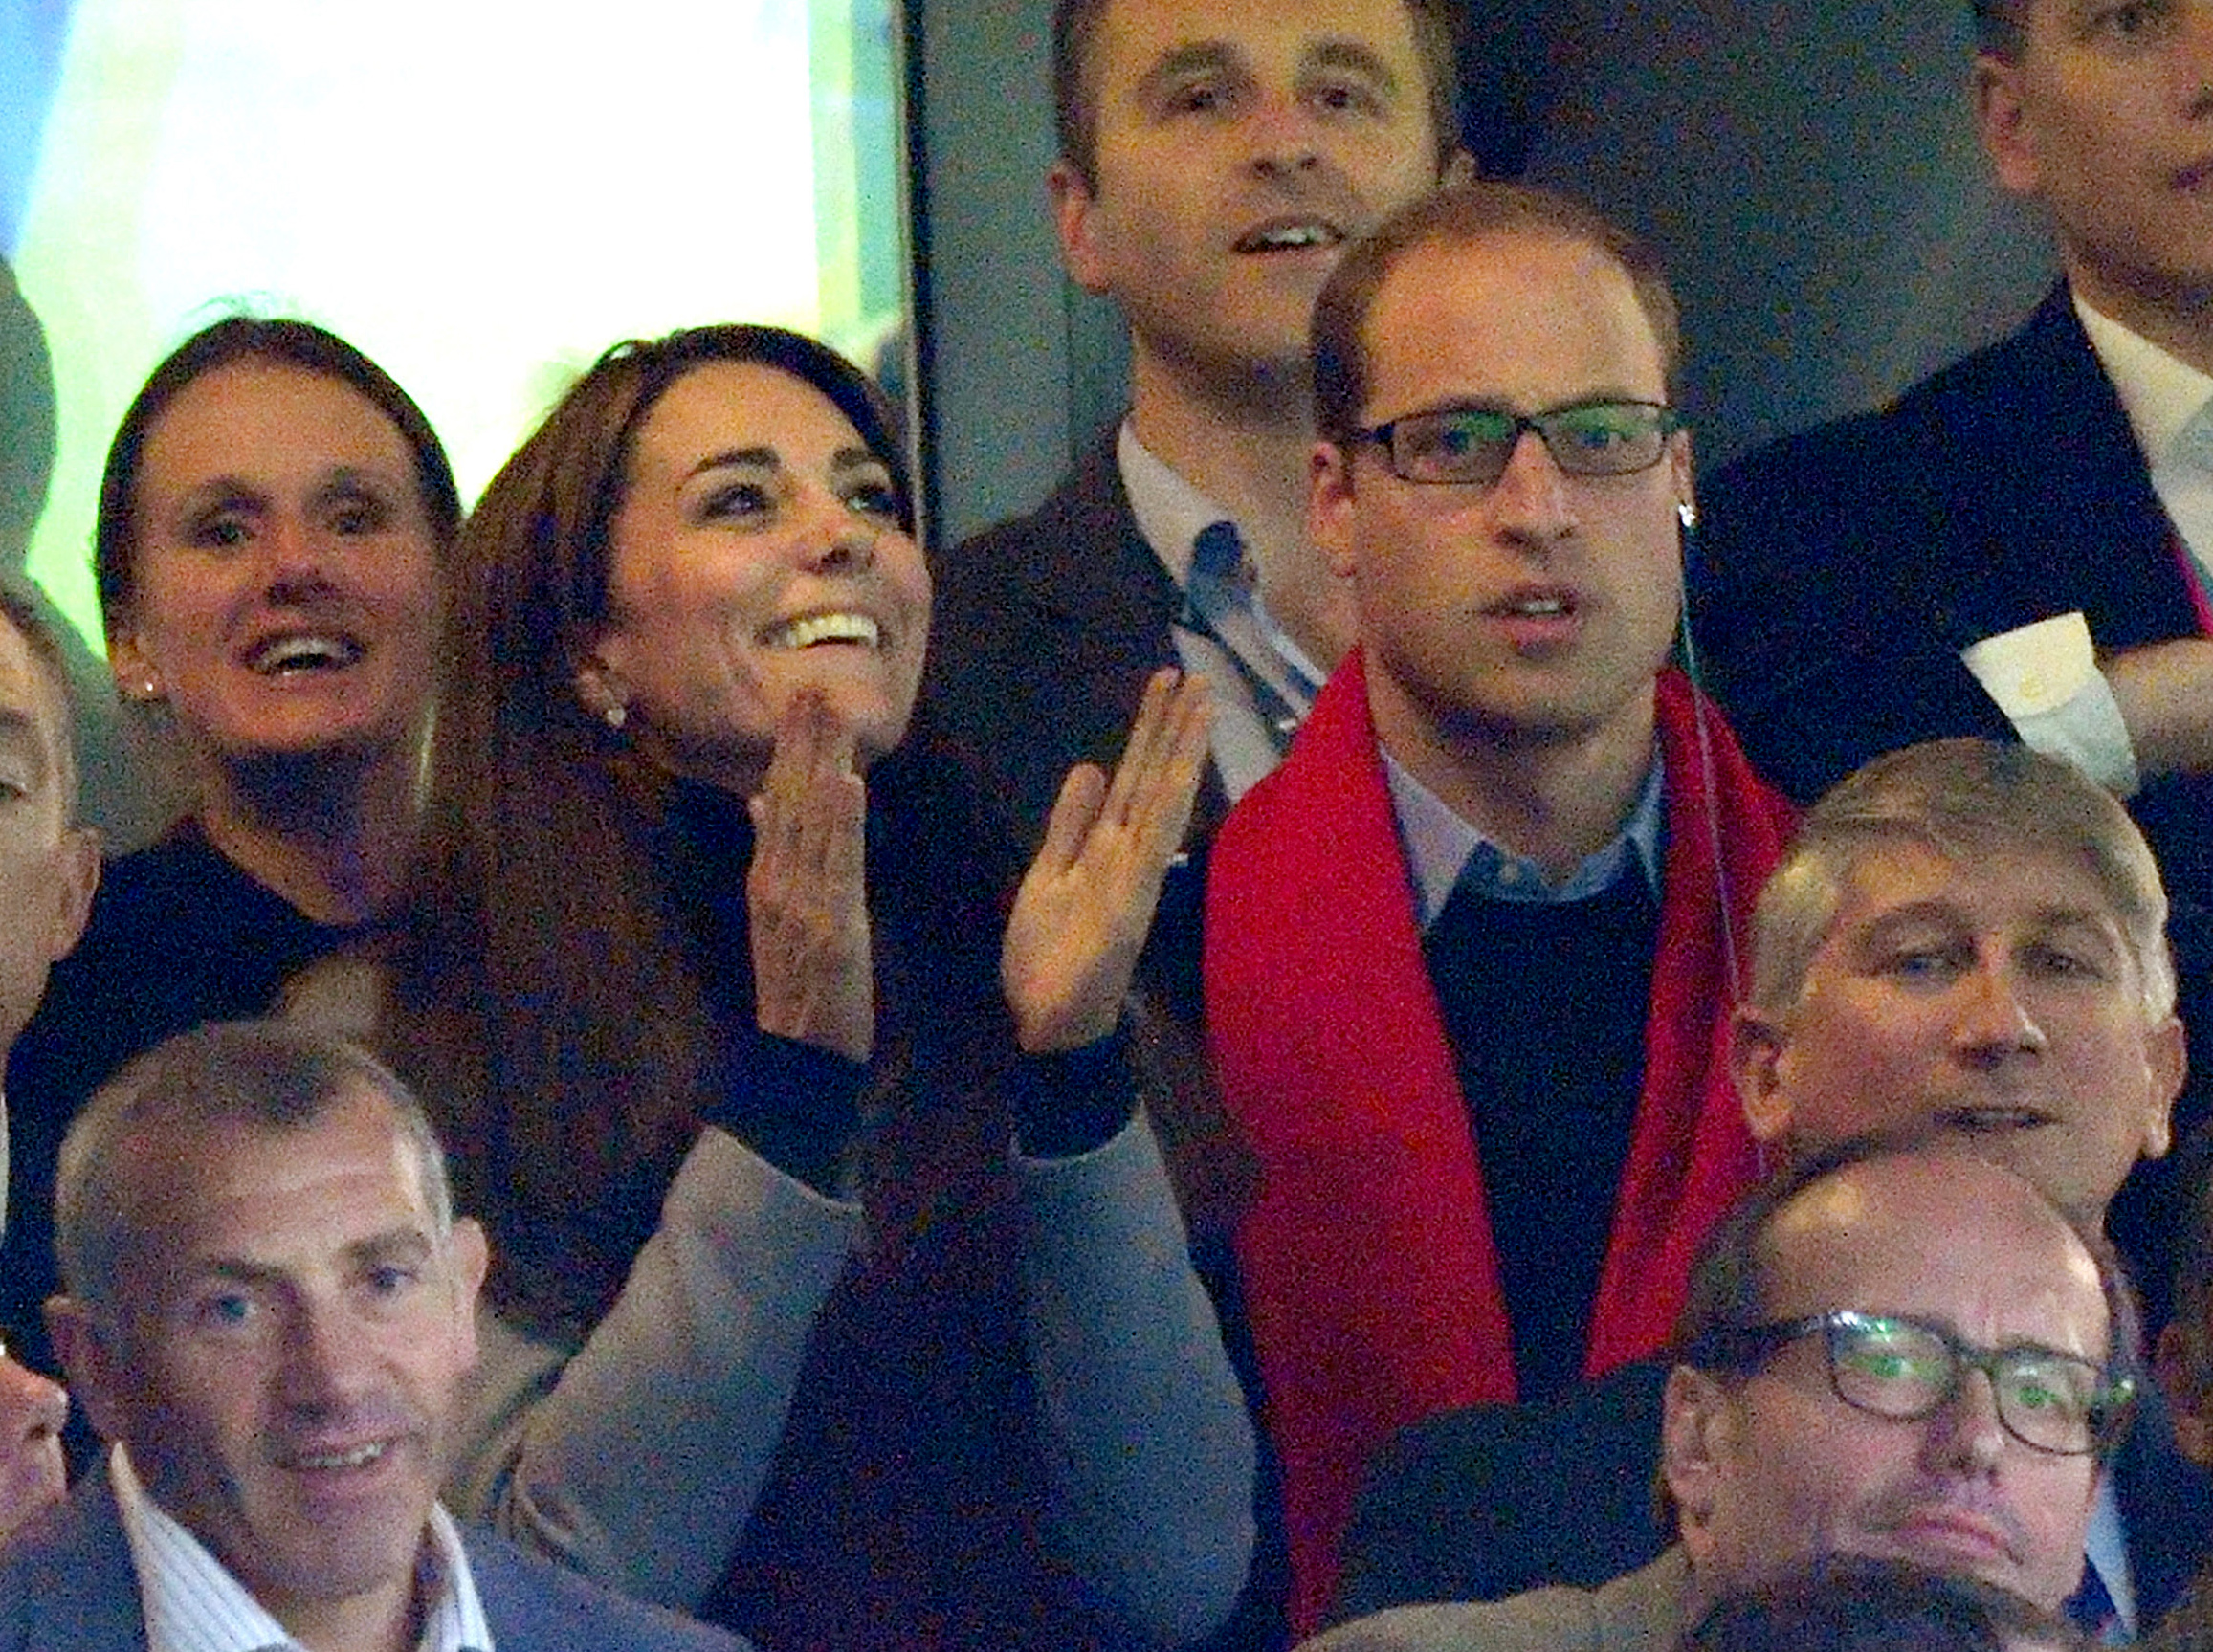 Kate Middleton and Prince William Prove They Are the Most Intense Rugby Fans